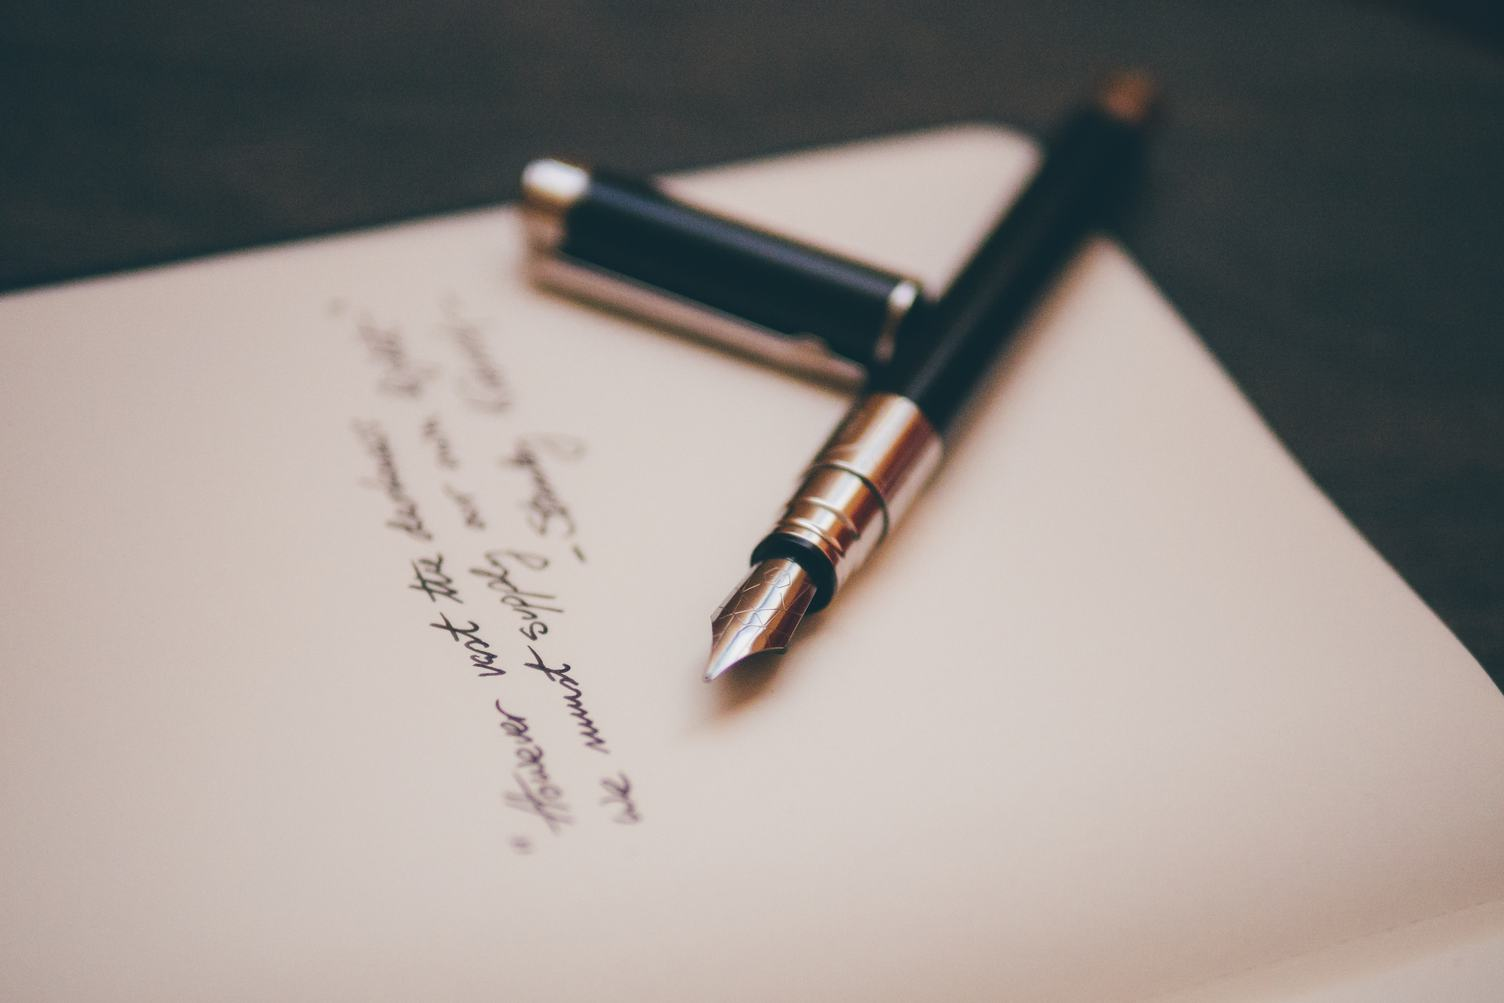 An Opened Pen with Some Handwritten Text